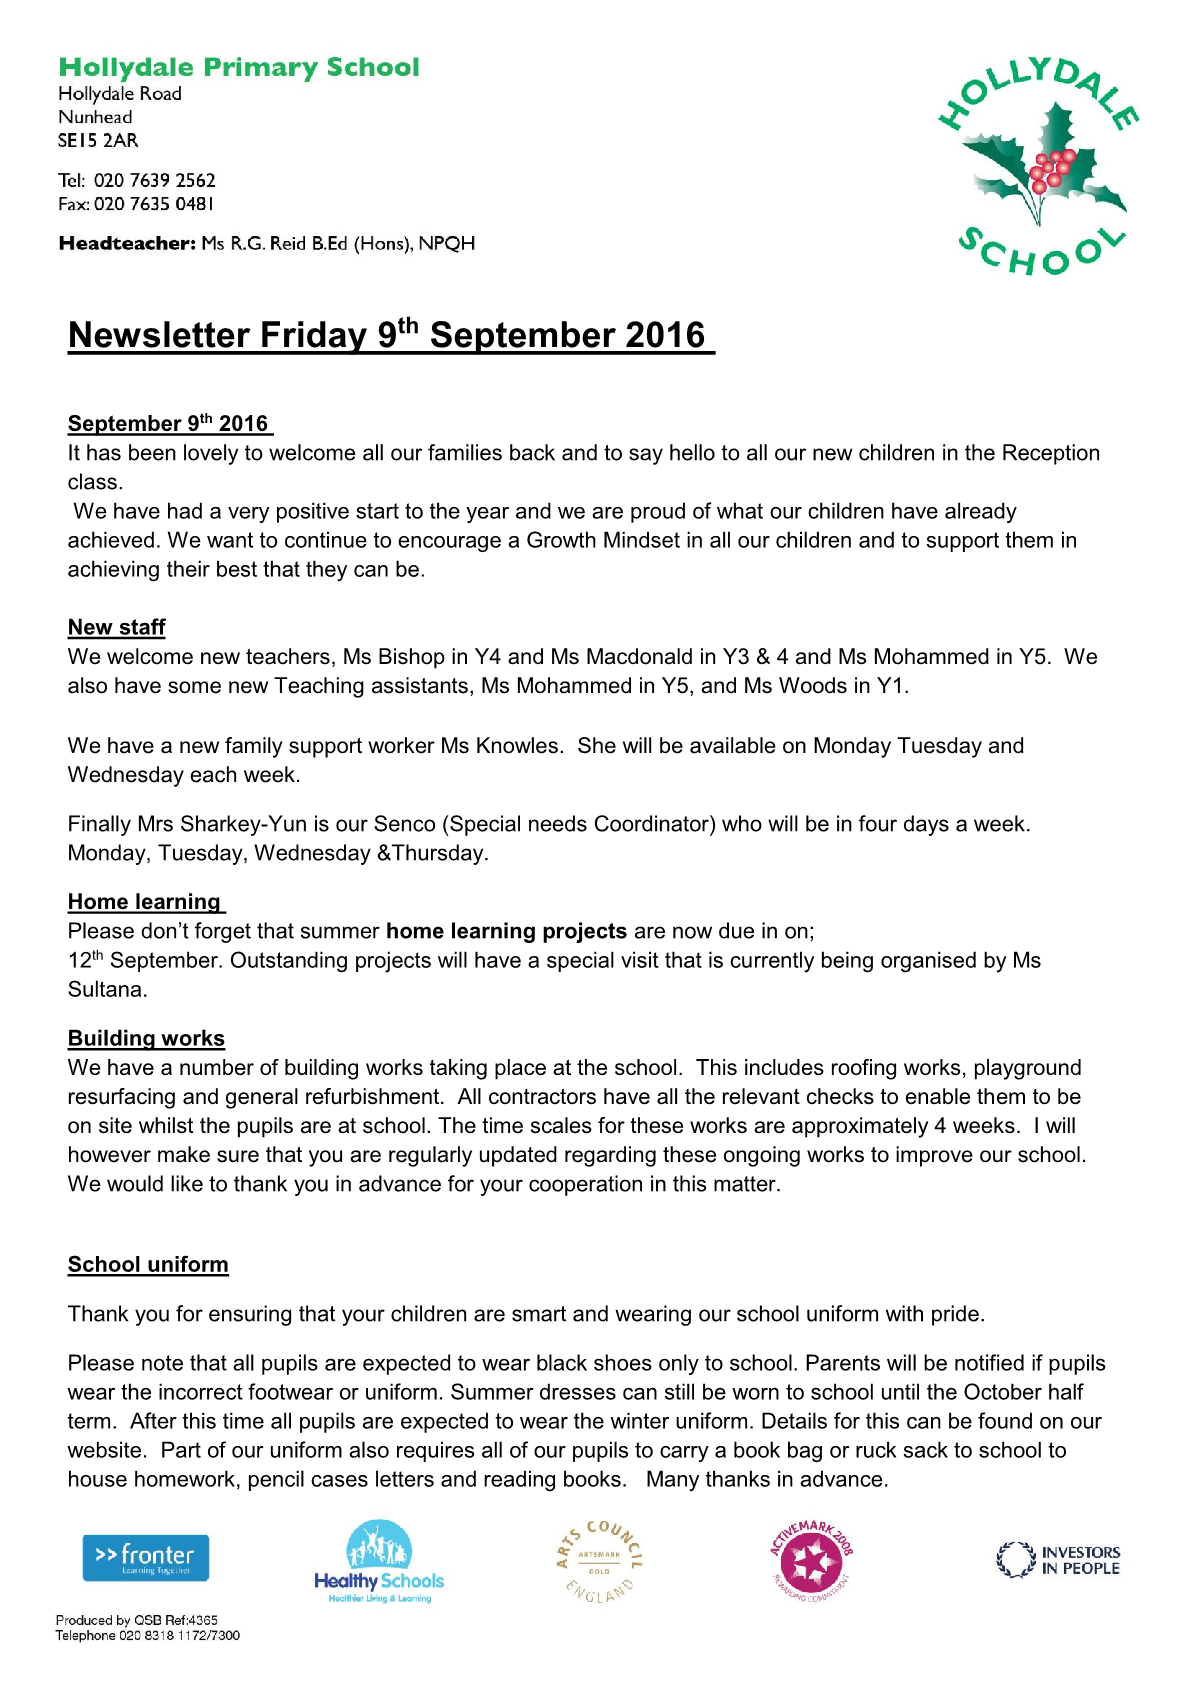 Newsletter 9th September 2016